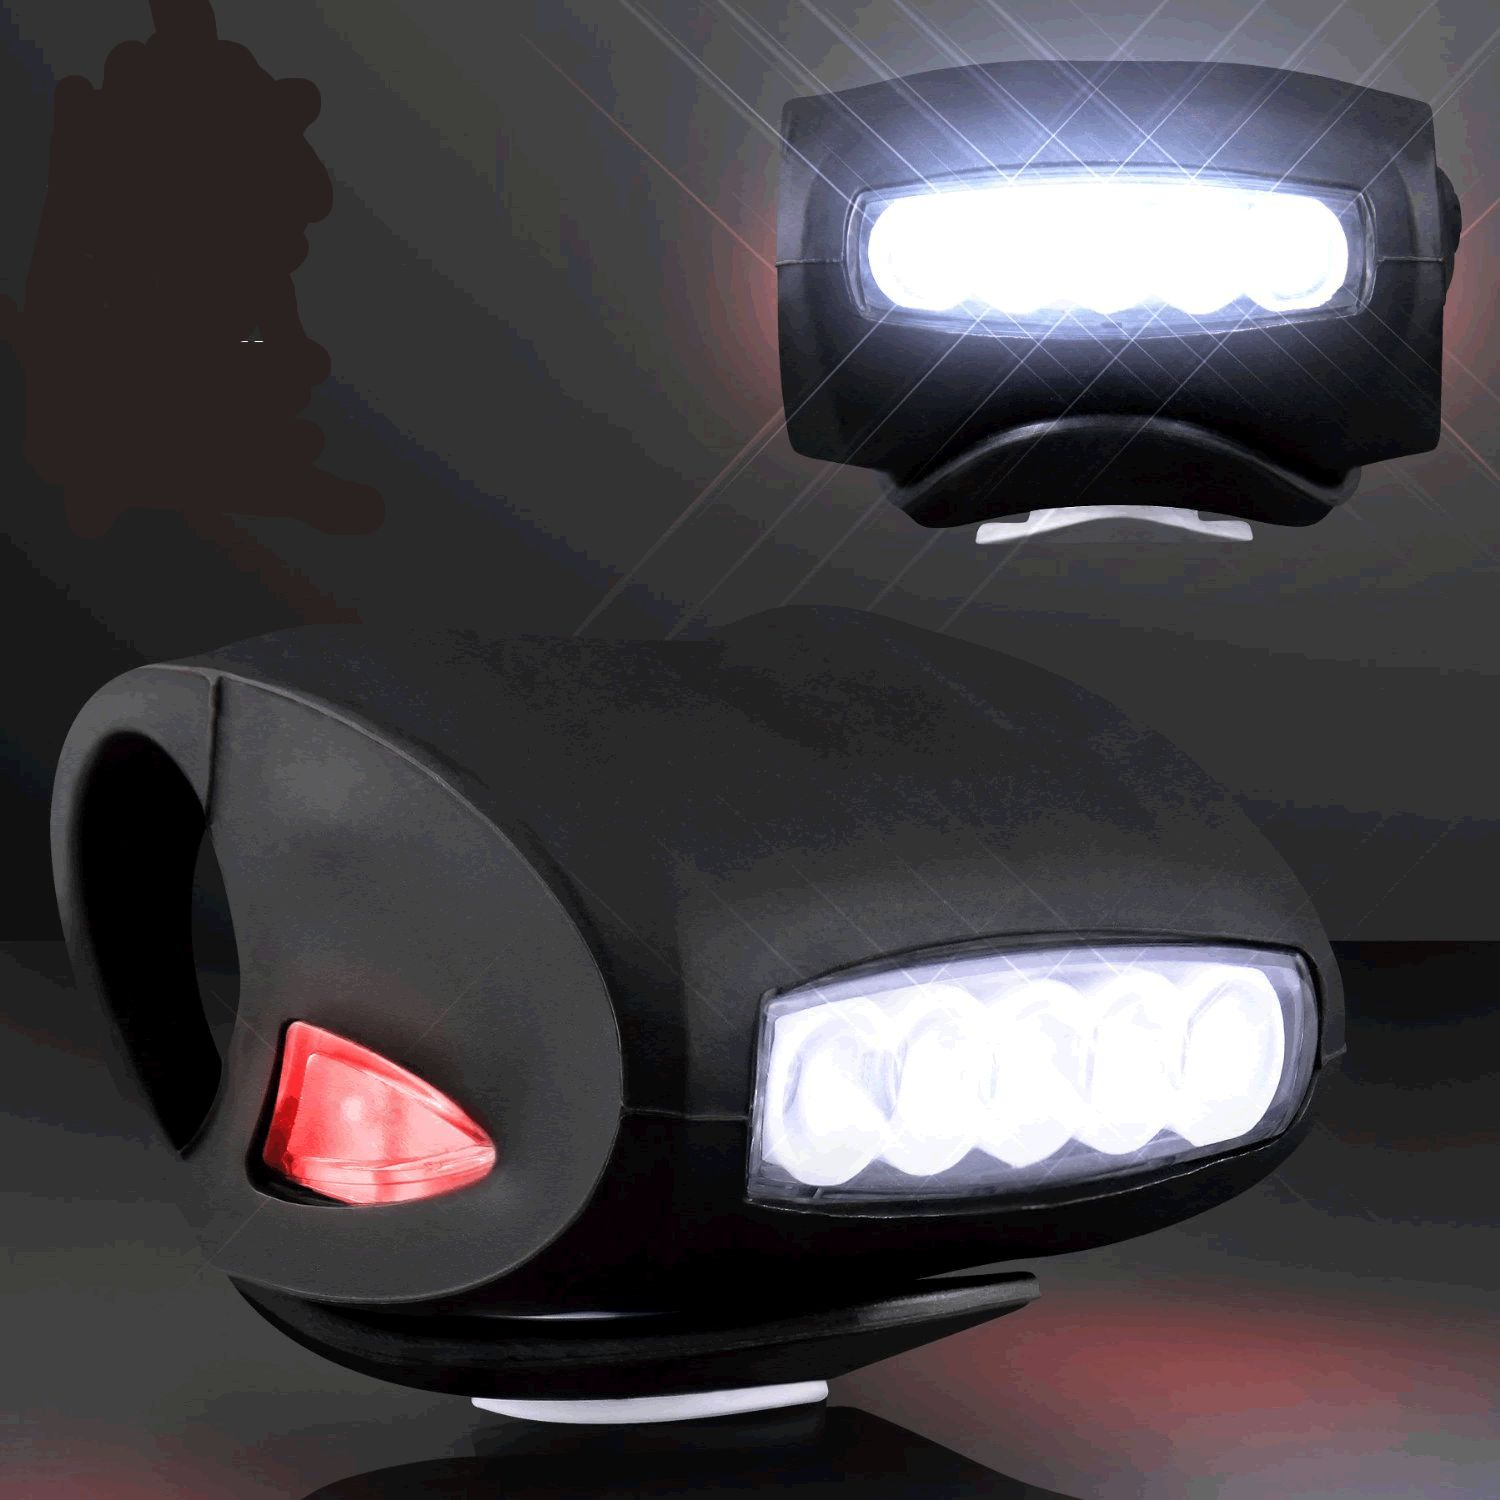 Black Bicycle Headlight with White and Red LEDs by Blinkee